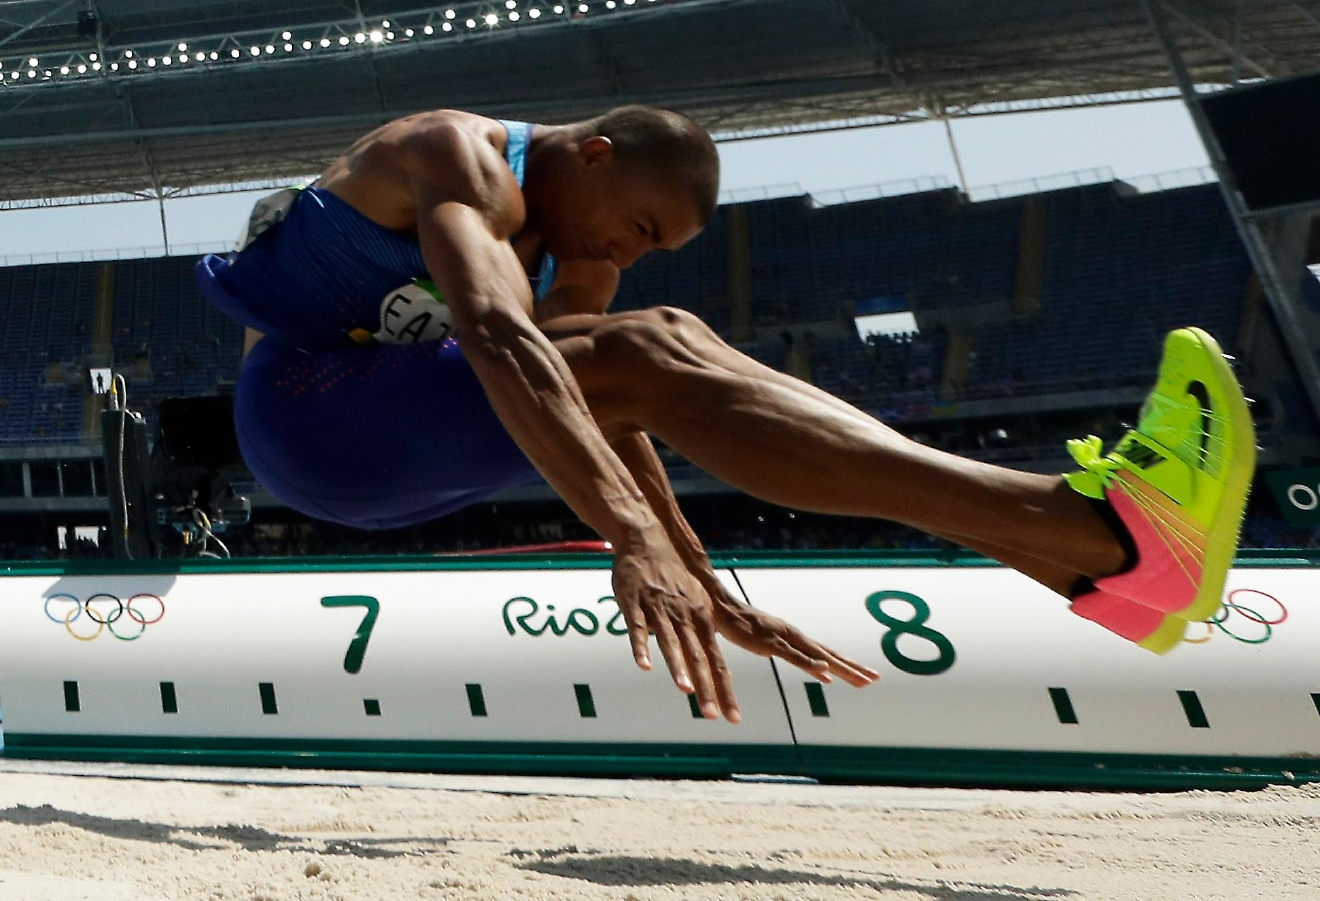 United States' Ashton Eaton makes an attempt in the long jump of the decathlon during the athletics competitions of the 2016 Summer Olympics at the Olympic stadium in Rio de Janeiro, Brazil, Wednesday, Aug. 17, 2016. (AP Photo/Matt Dunham)